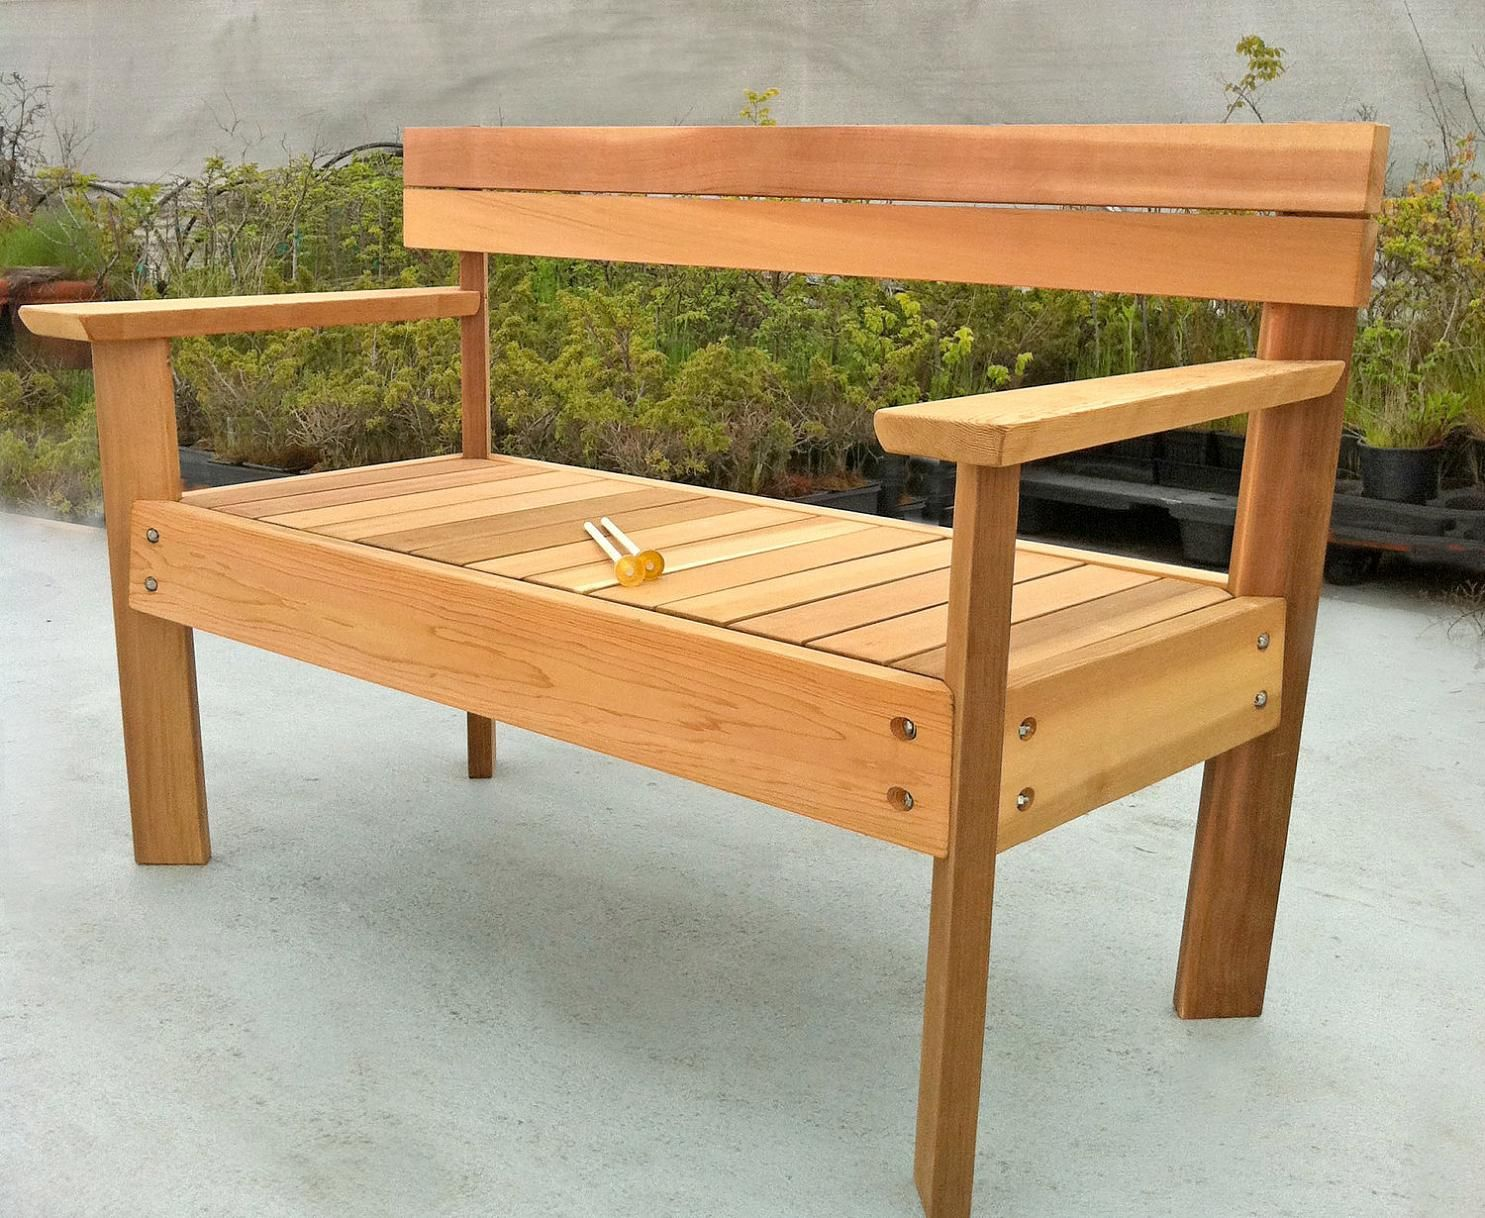 Bench For Outdoors, Reclaimed Wood Outdoor Bench Outdoor Wood .